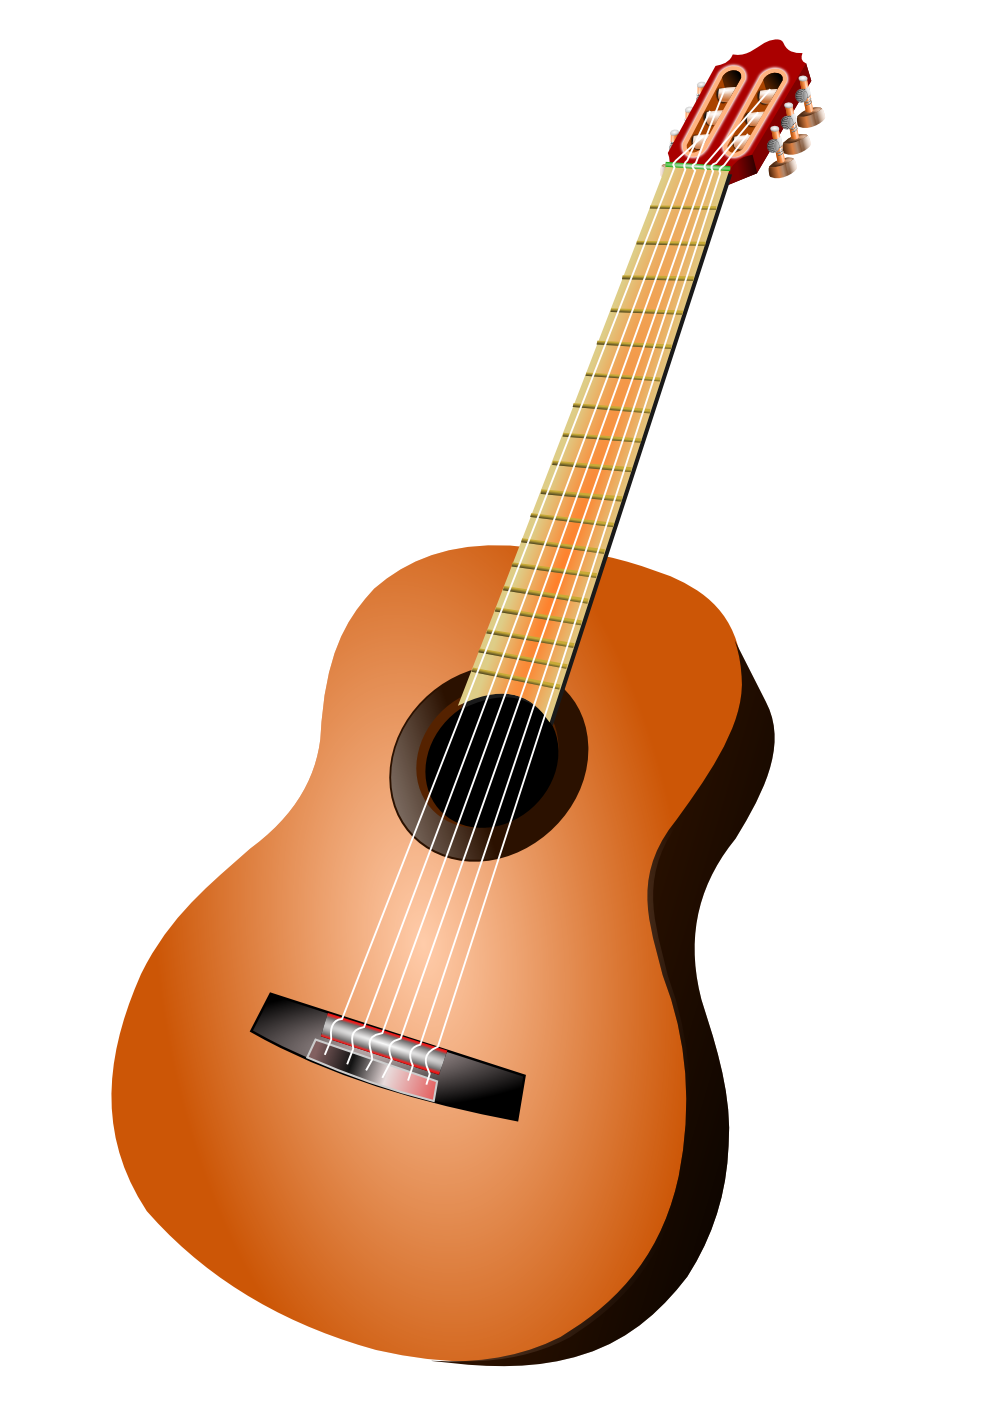 Clipart guitar concert. Fifteen isolated stock photo